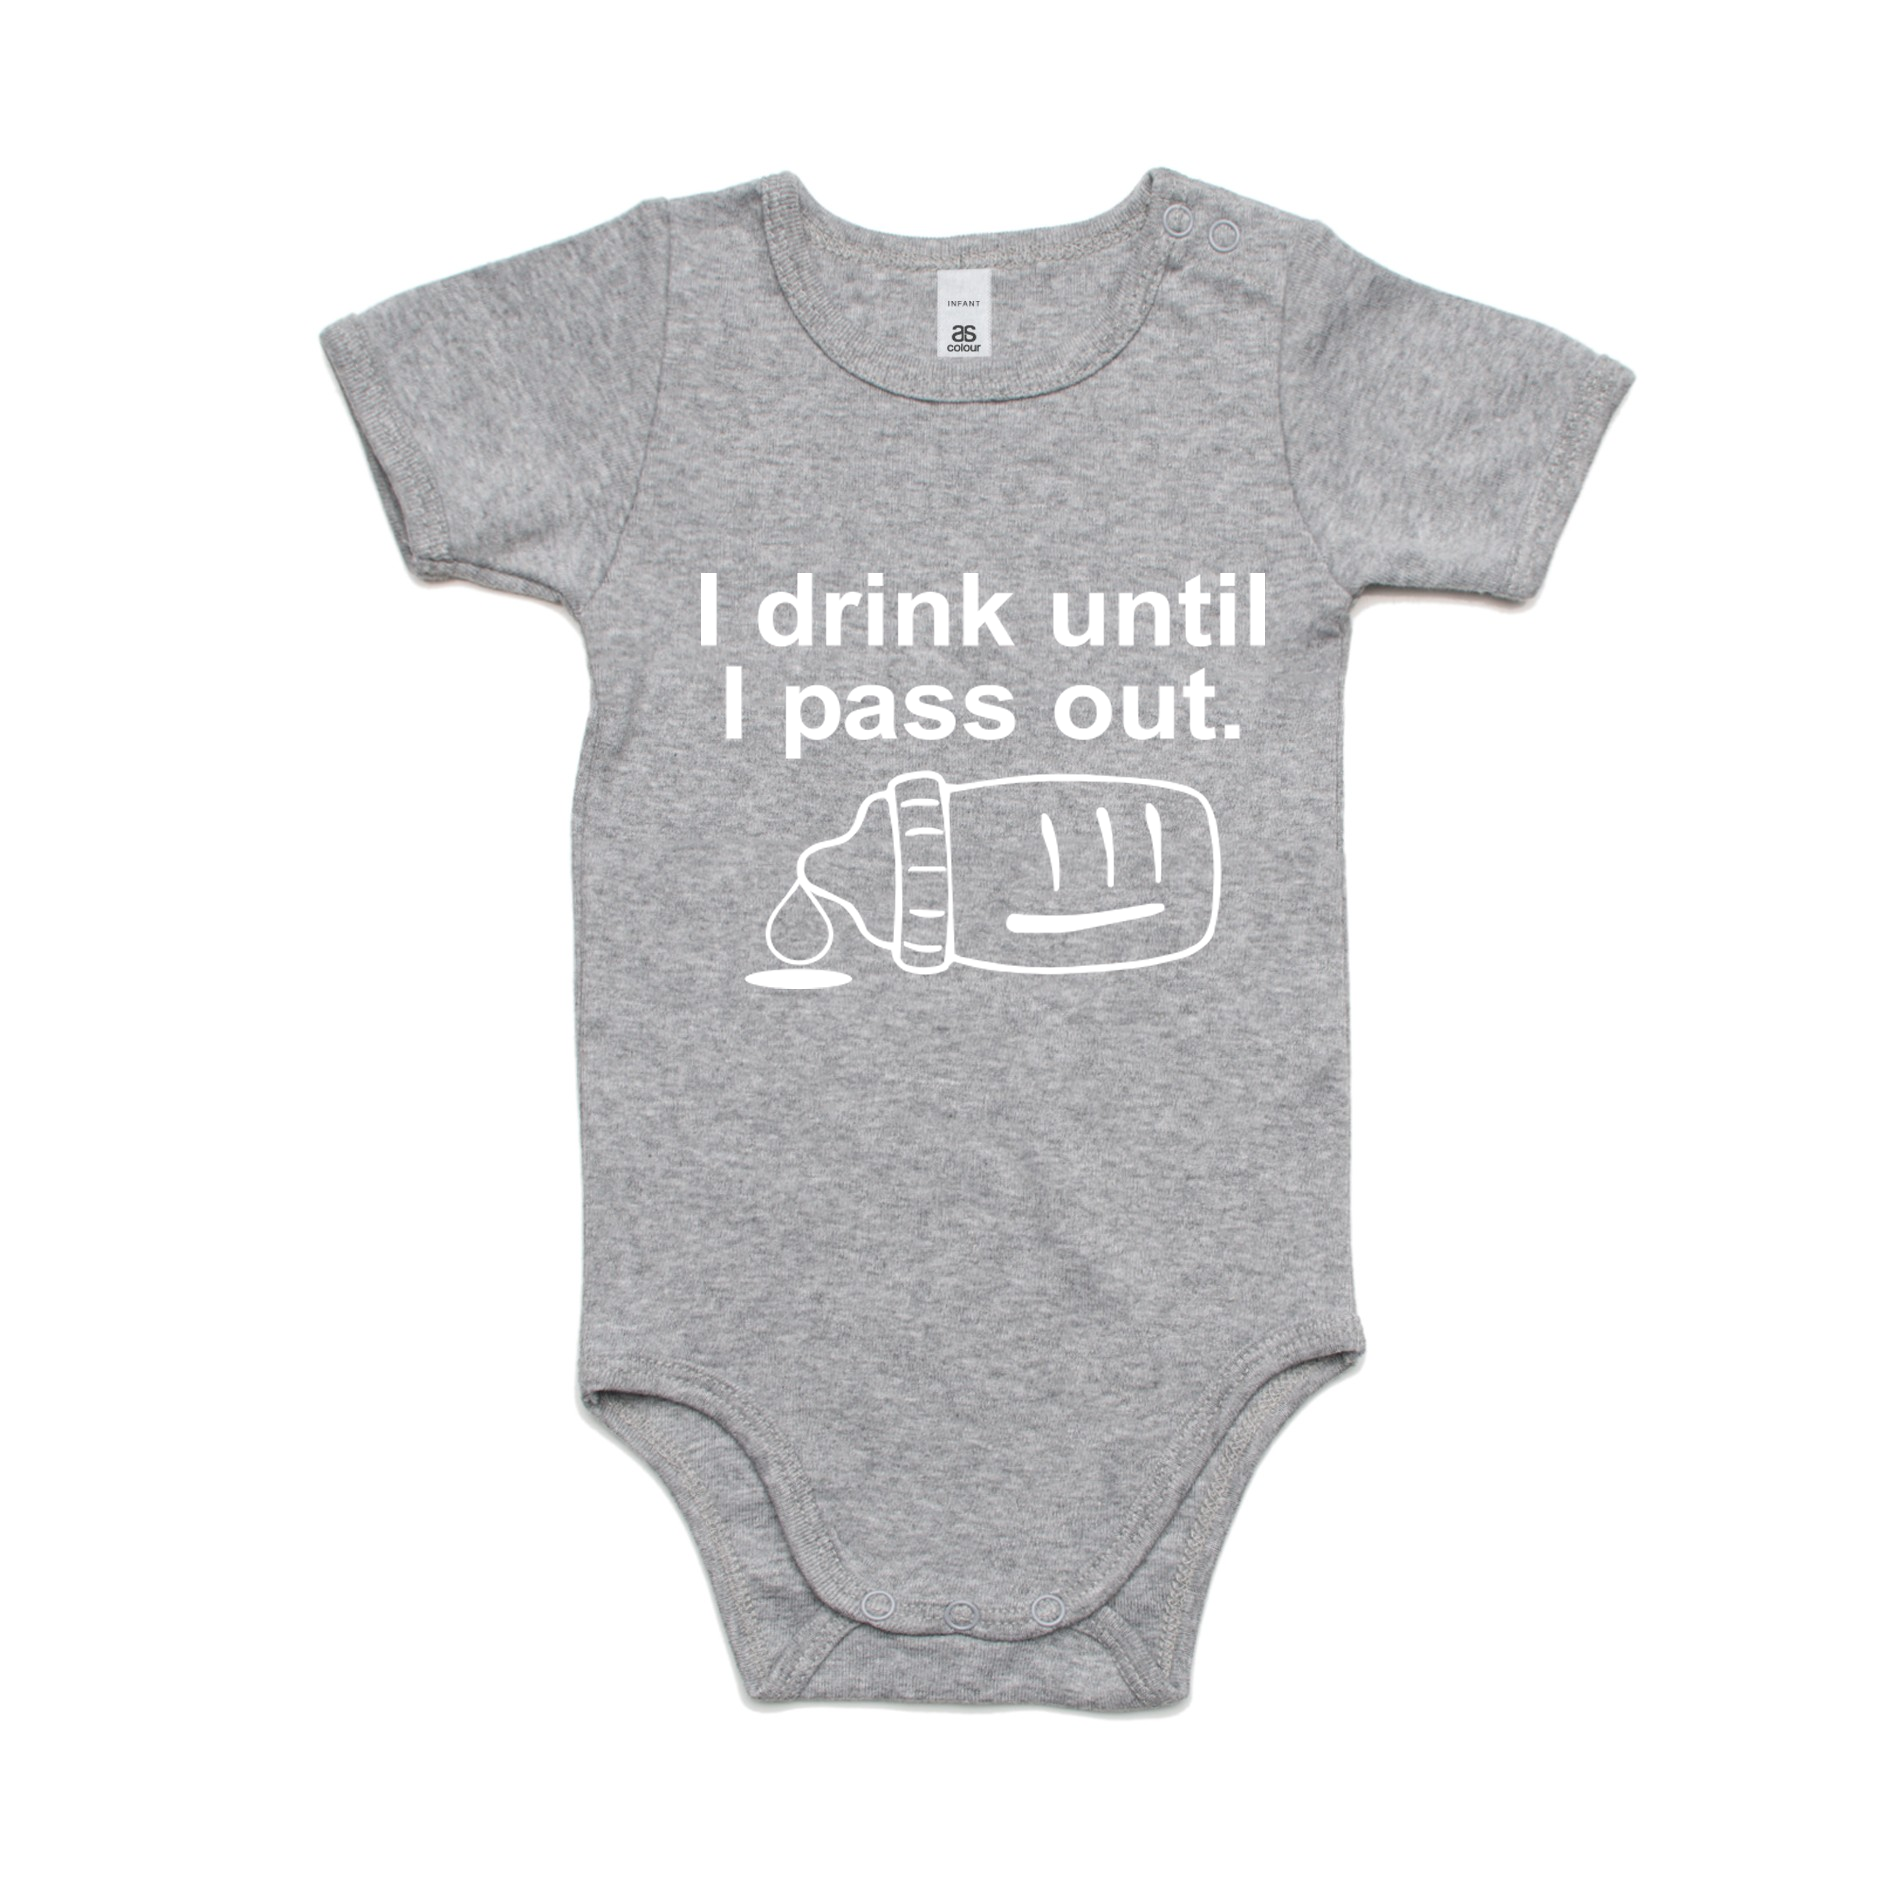 I DRINK UNTIL I PASS OUT (WHITE PRINT)